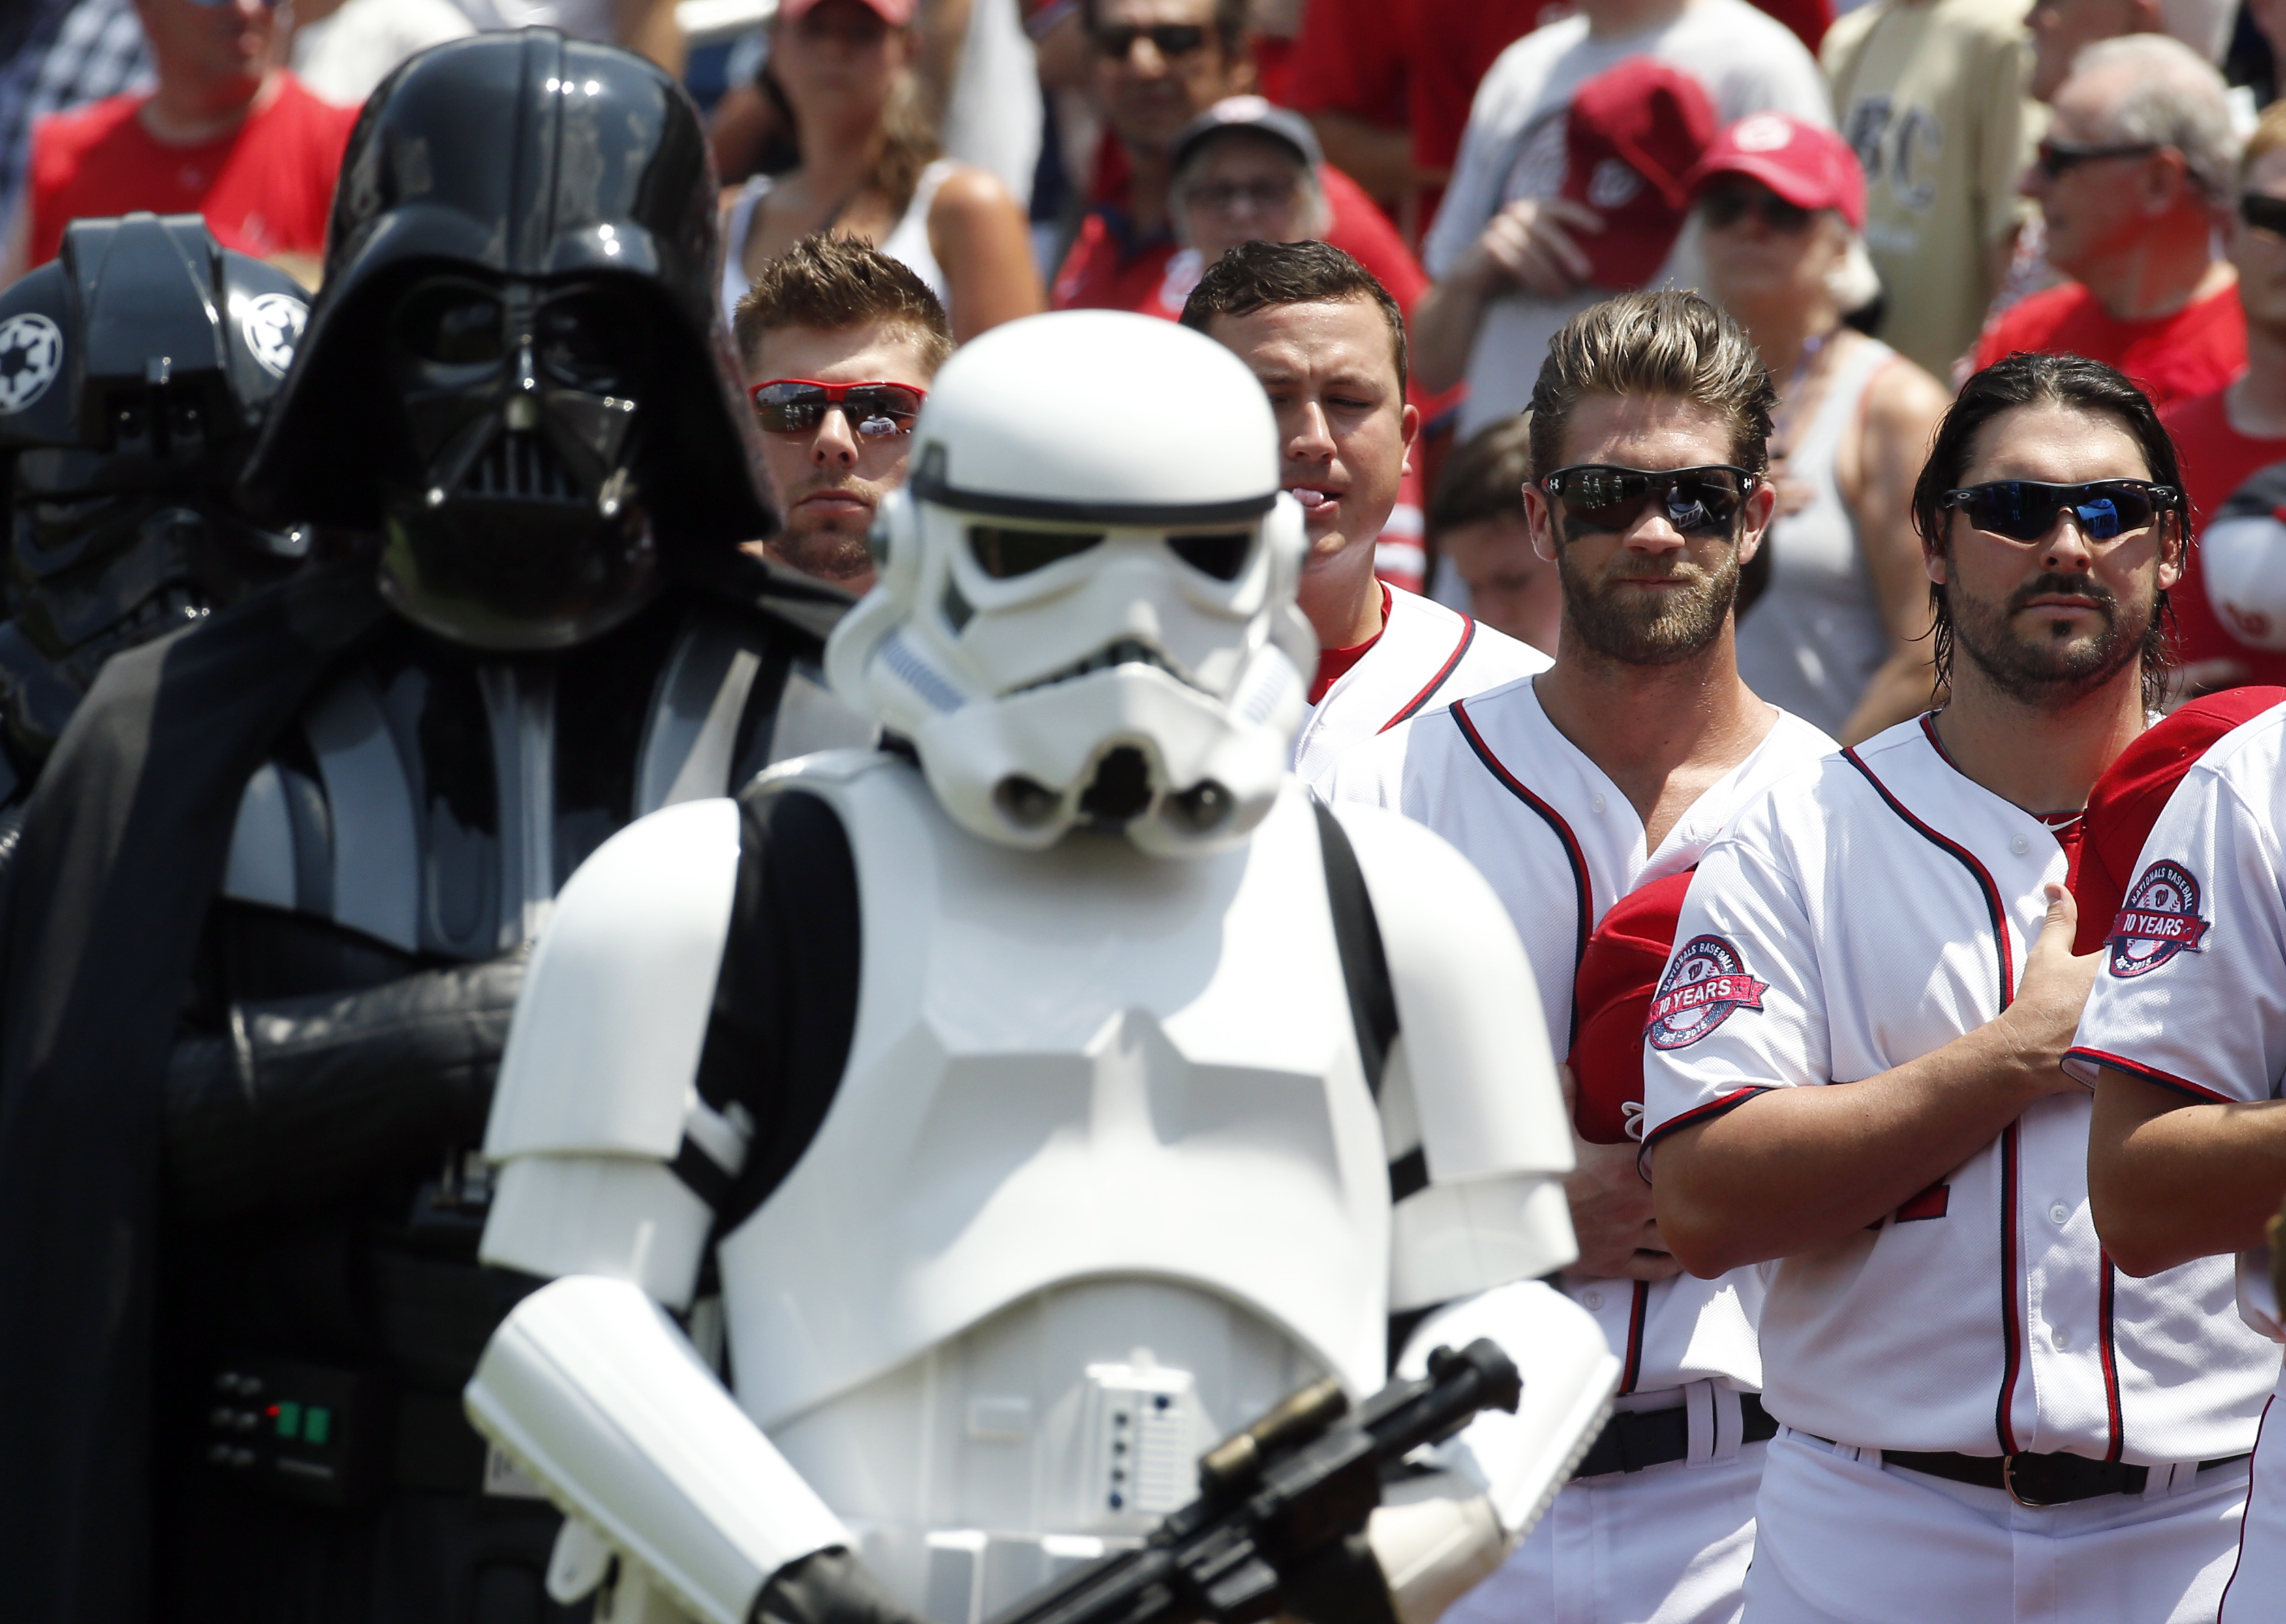 Photos: Star Wars Day at Nationals Park